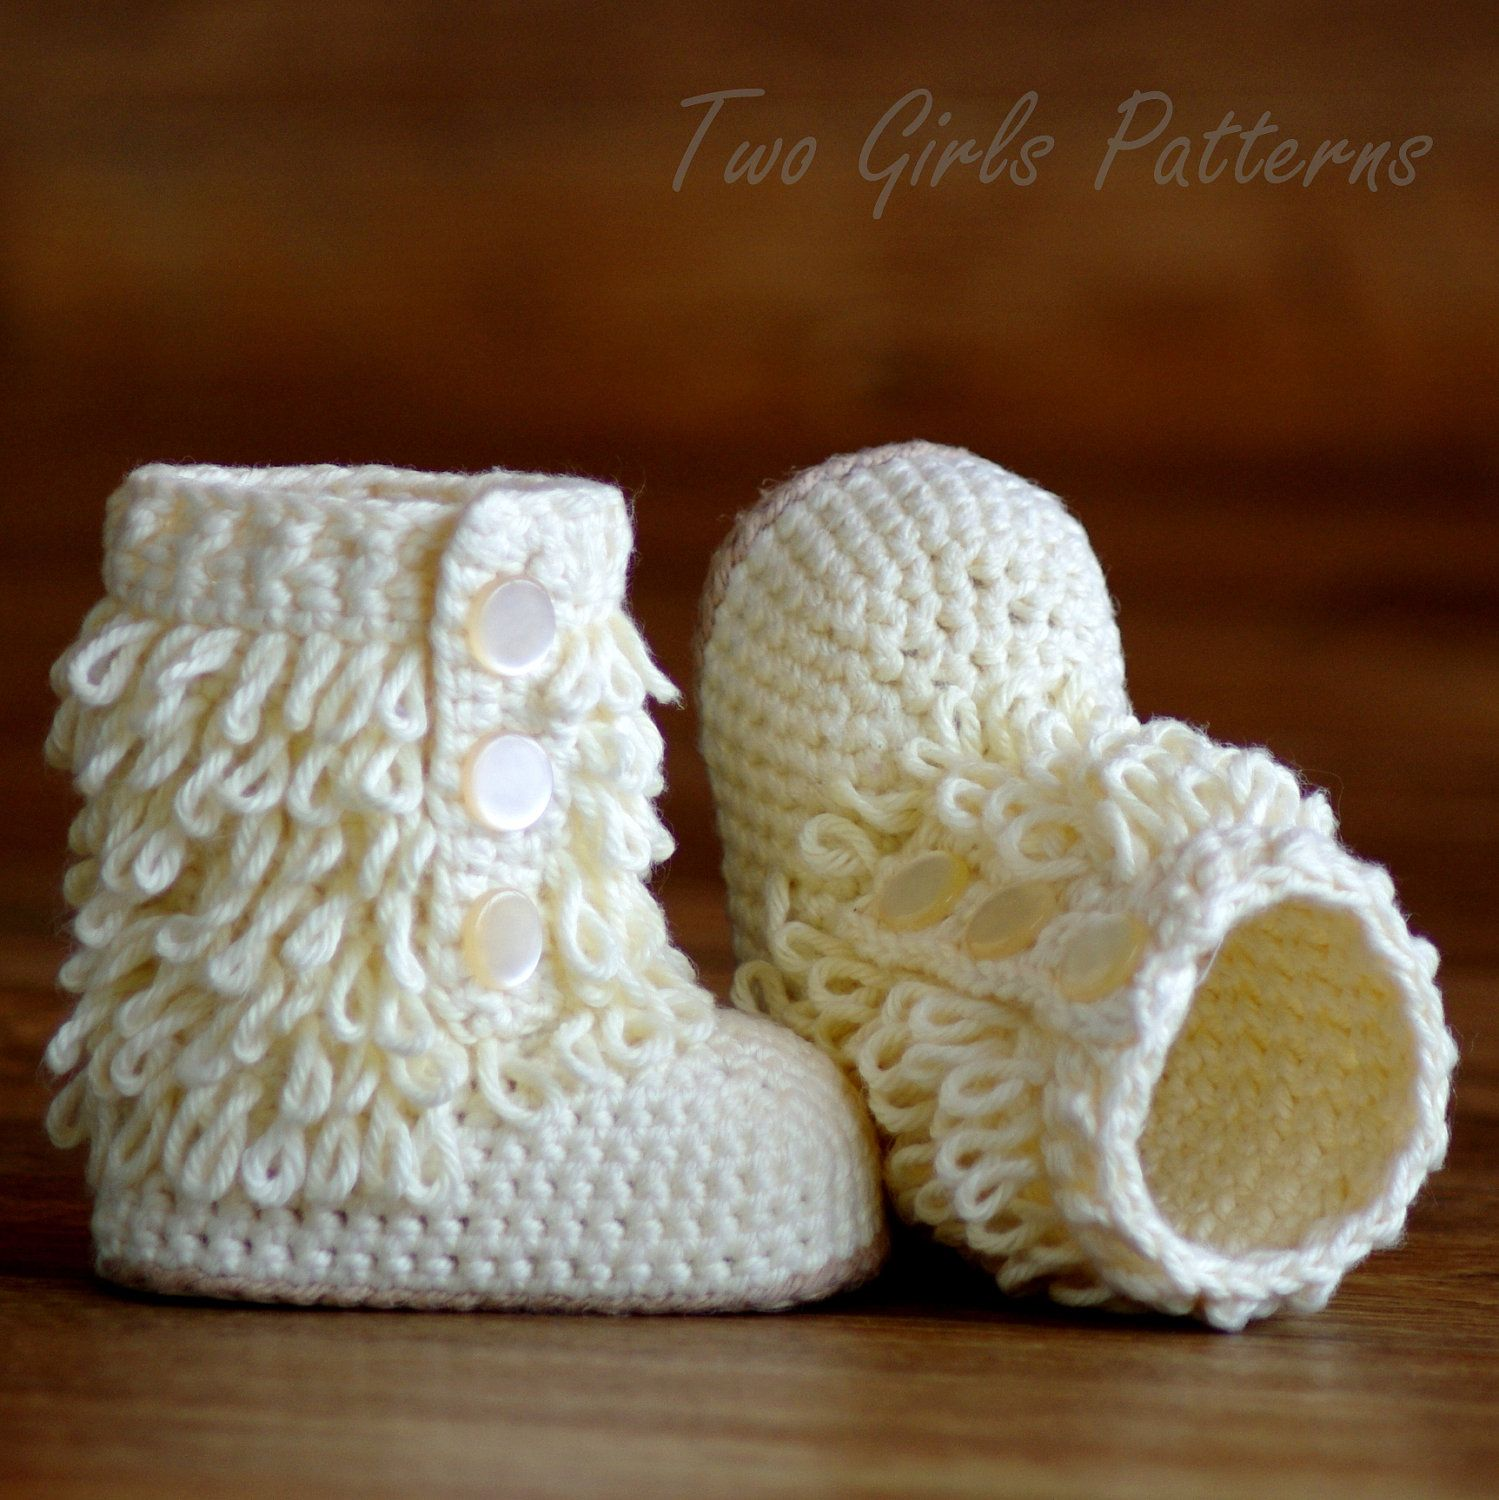 Crochet pattern baby boot furrylicious loop boot pattern crochet pattern baby boot furrylicious loop boot pattern number 200 instant download kc550 bankloansurffo Choice Image